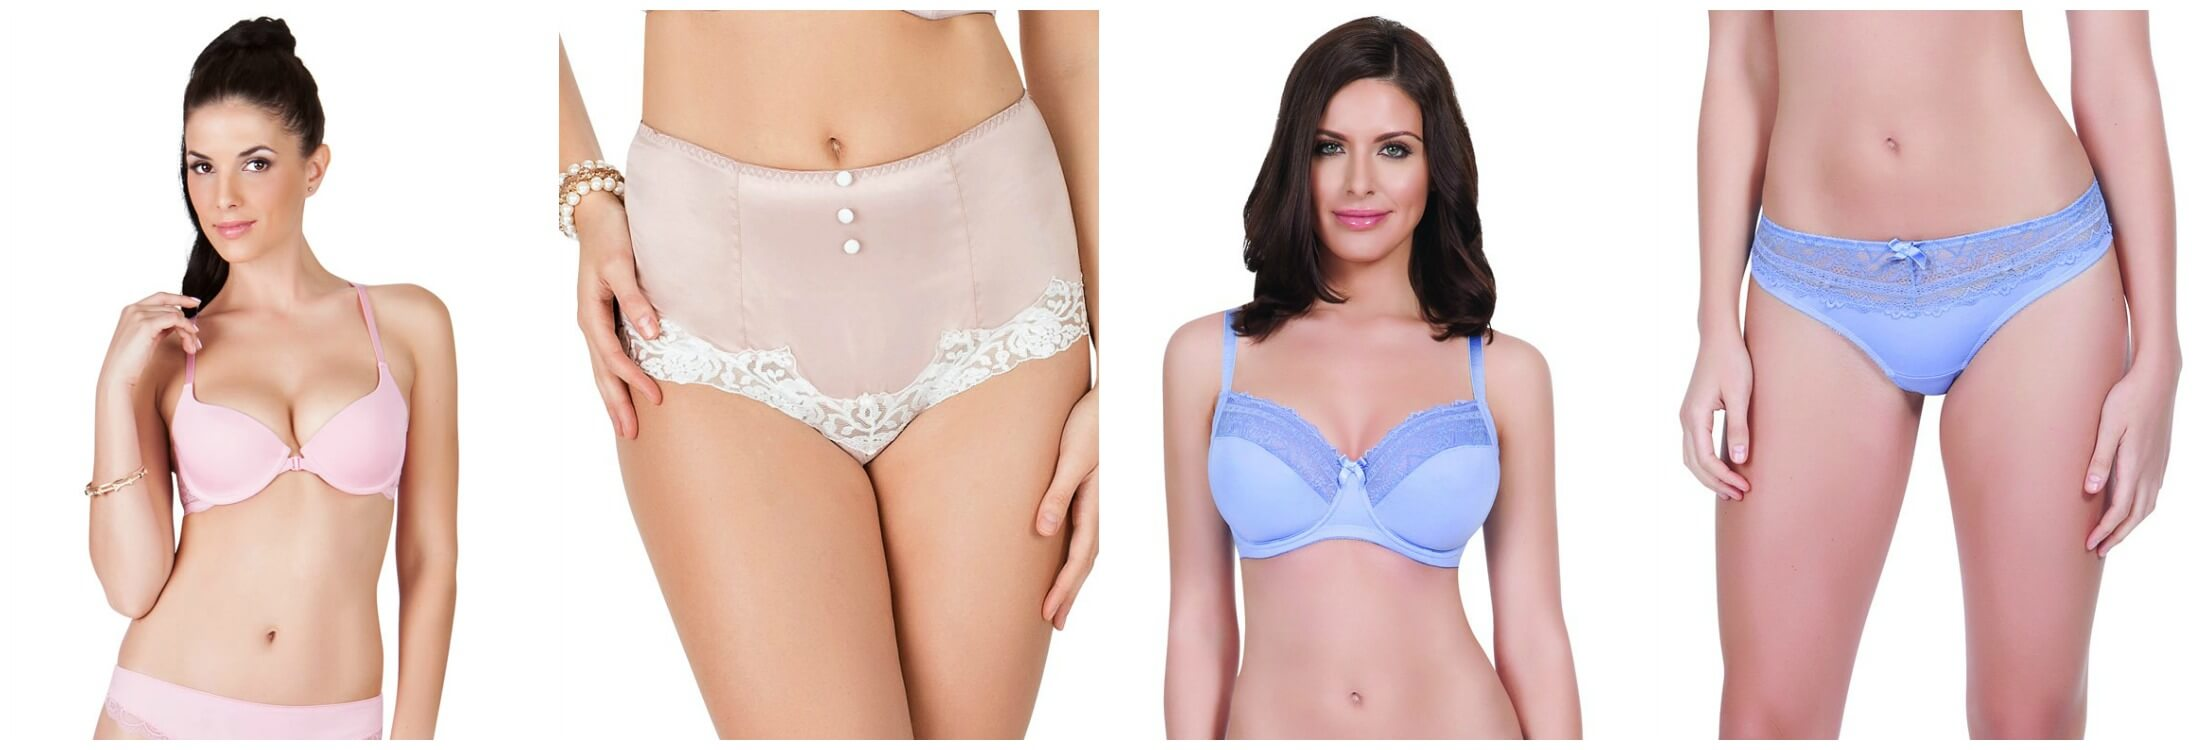 Nicole Seamless Padded Front Opening Racer-Back Bra by Affinitas Intimates; Danielle Satin Brief (rose And Purple) By Affinitas Parfait; Casey Unlined Wire Bra by Affinitas Parfait; Casey Lacy Thong by Affinitas Parfait